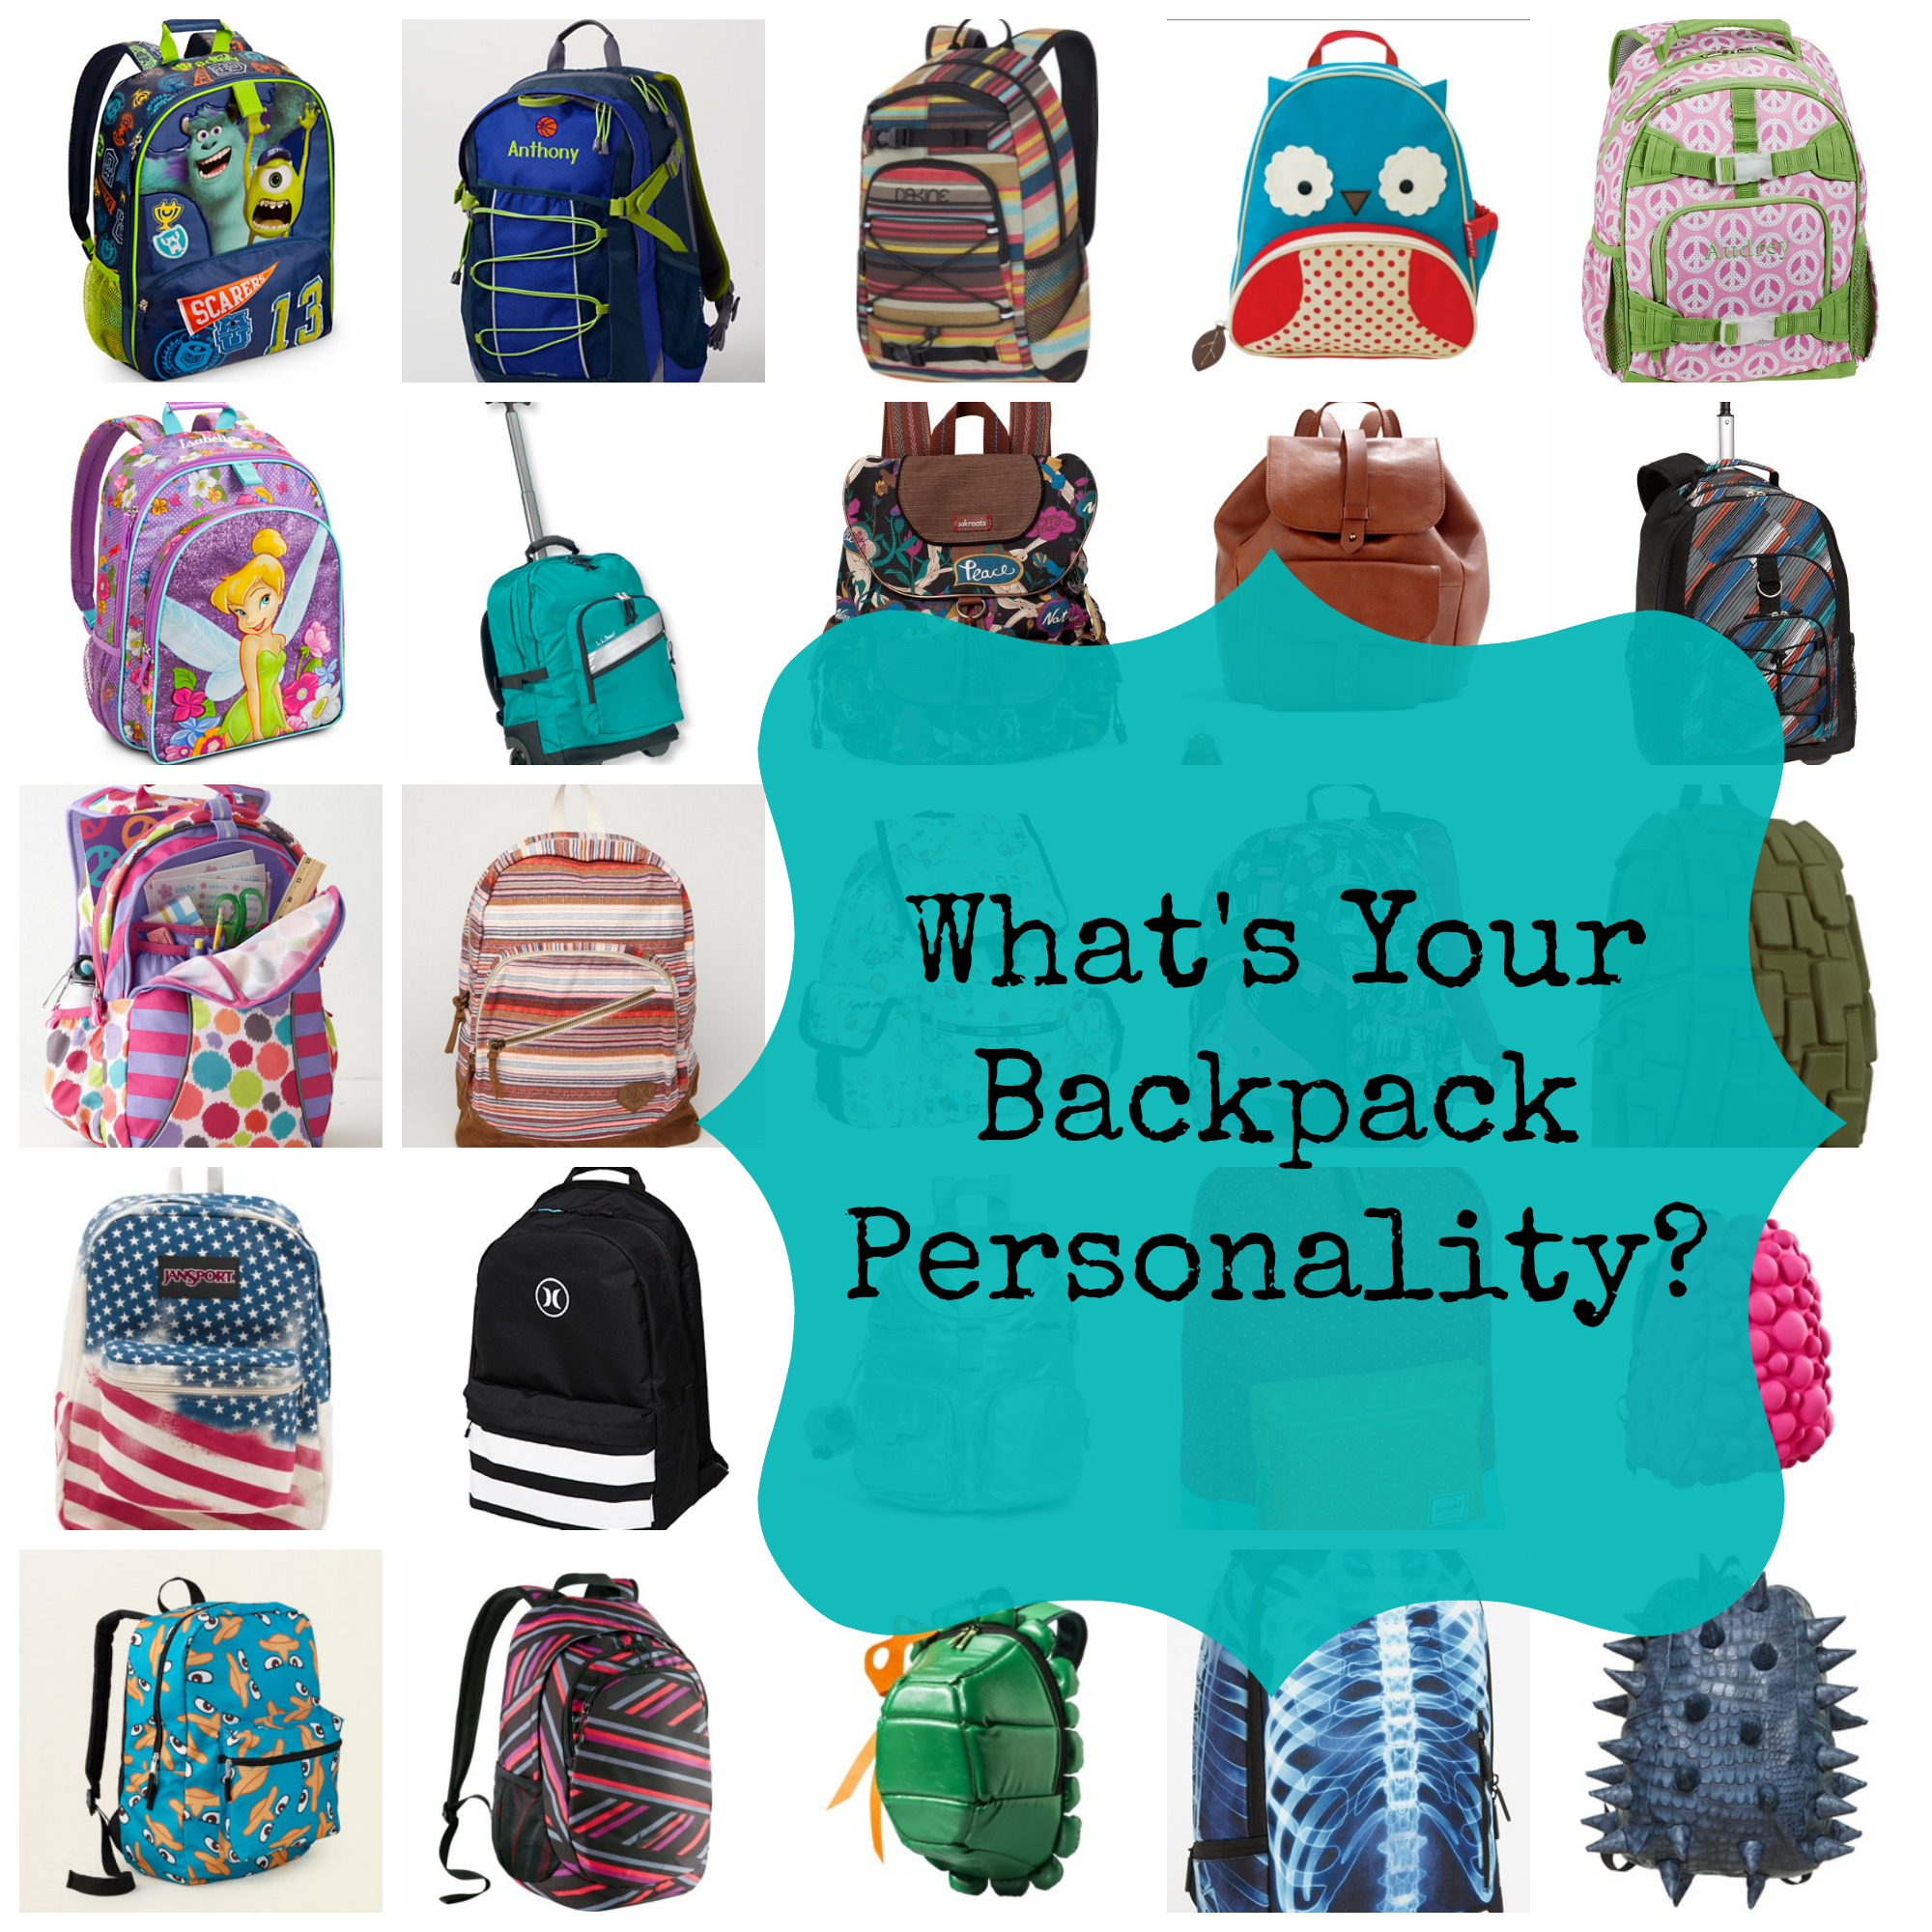 Best Backpack Brands For School lTlGzuK8